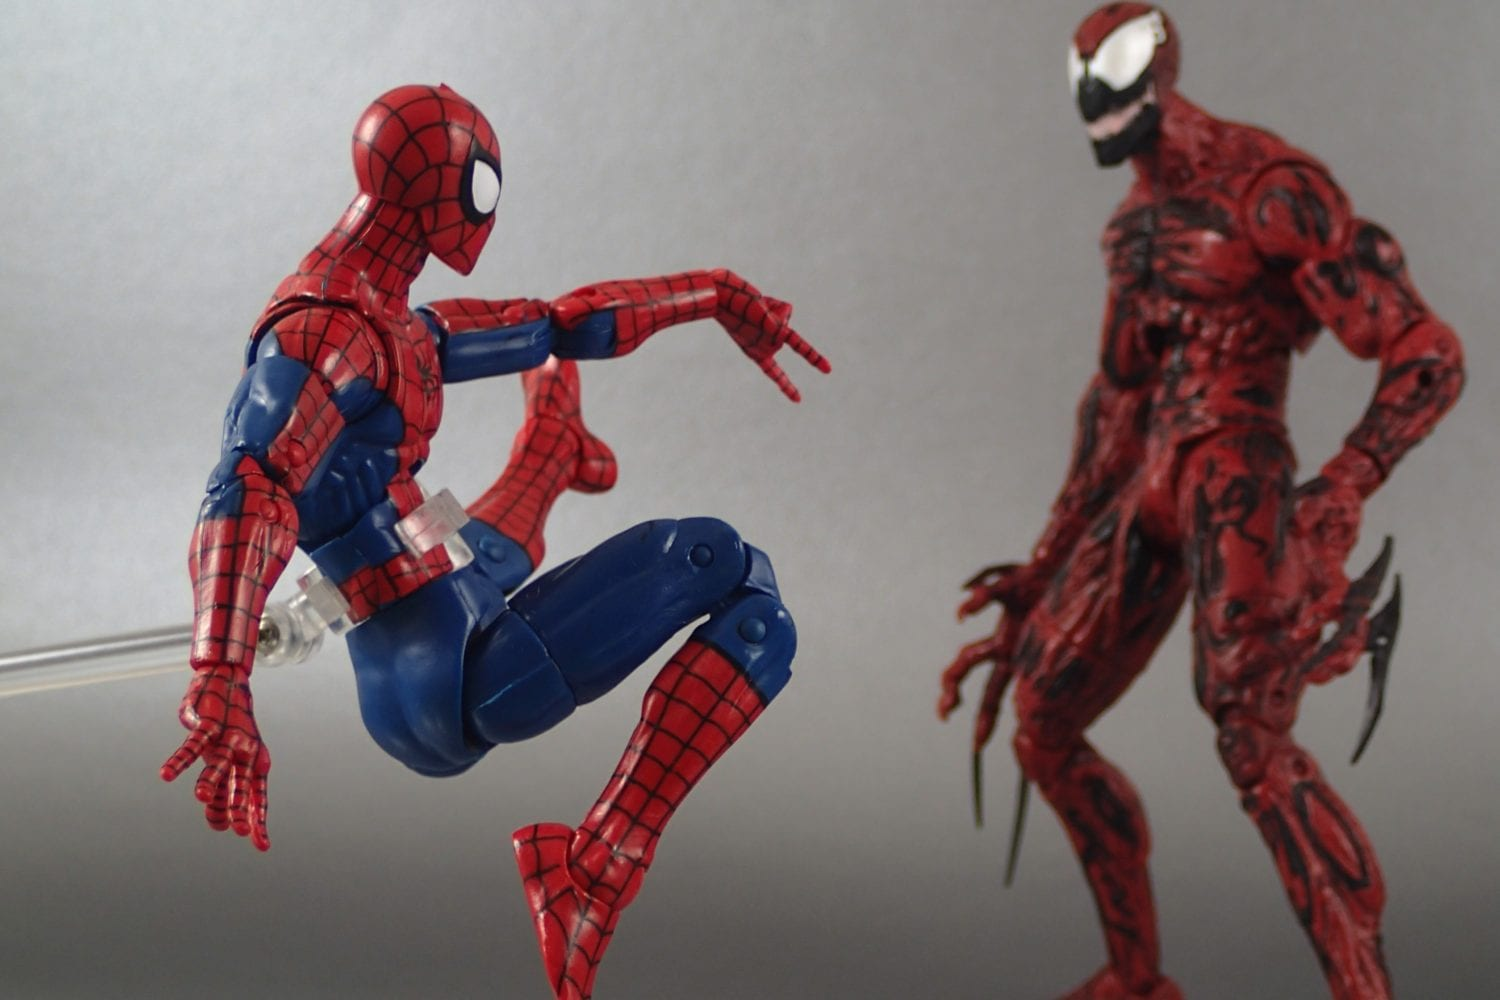 black spiderman vs carnage - photo #25